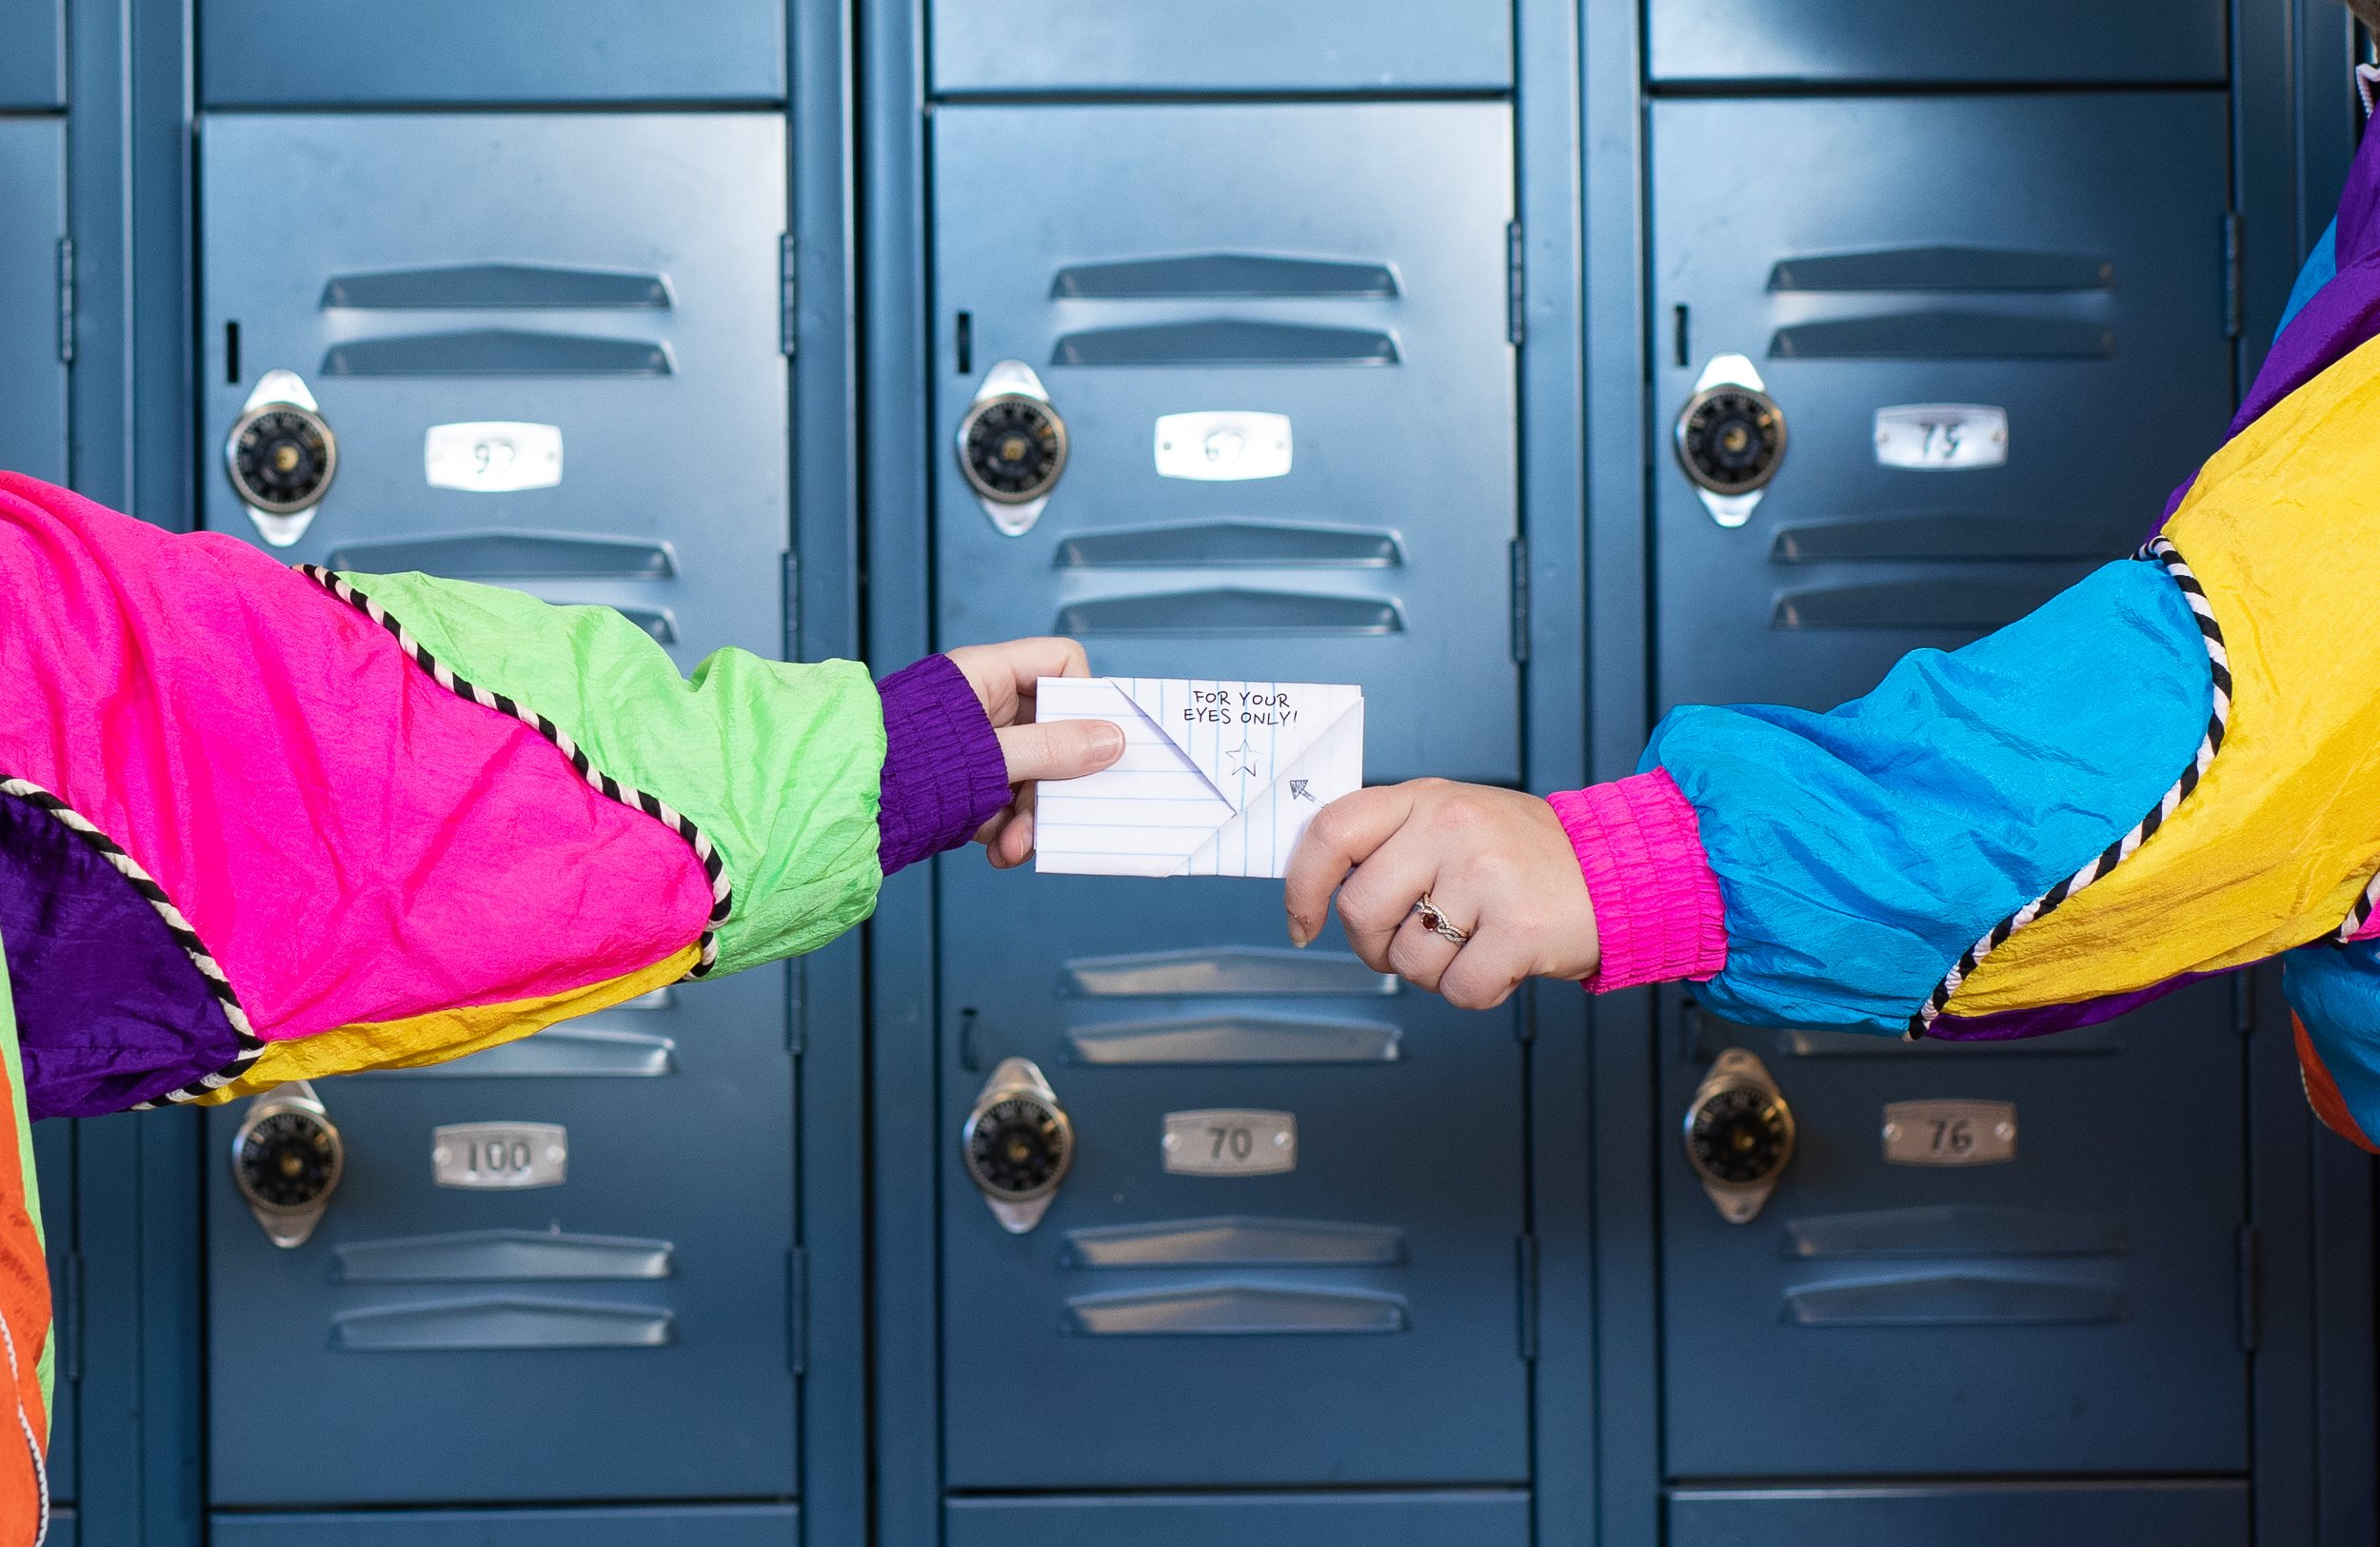 folded marketing campaign letter handing off in front of lockers